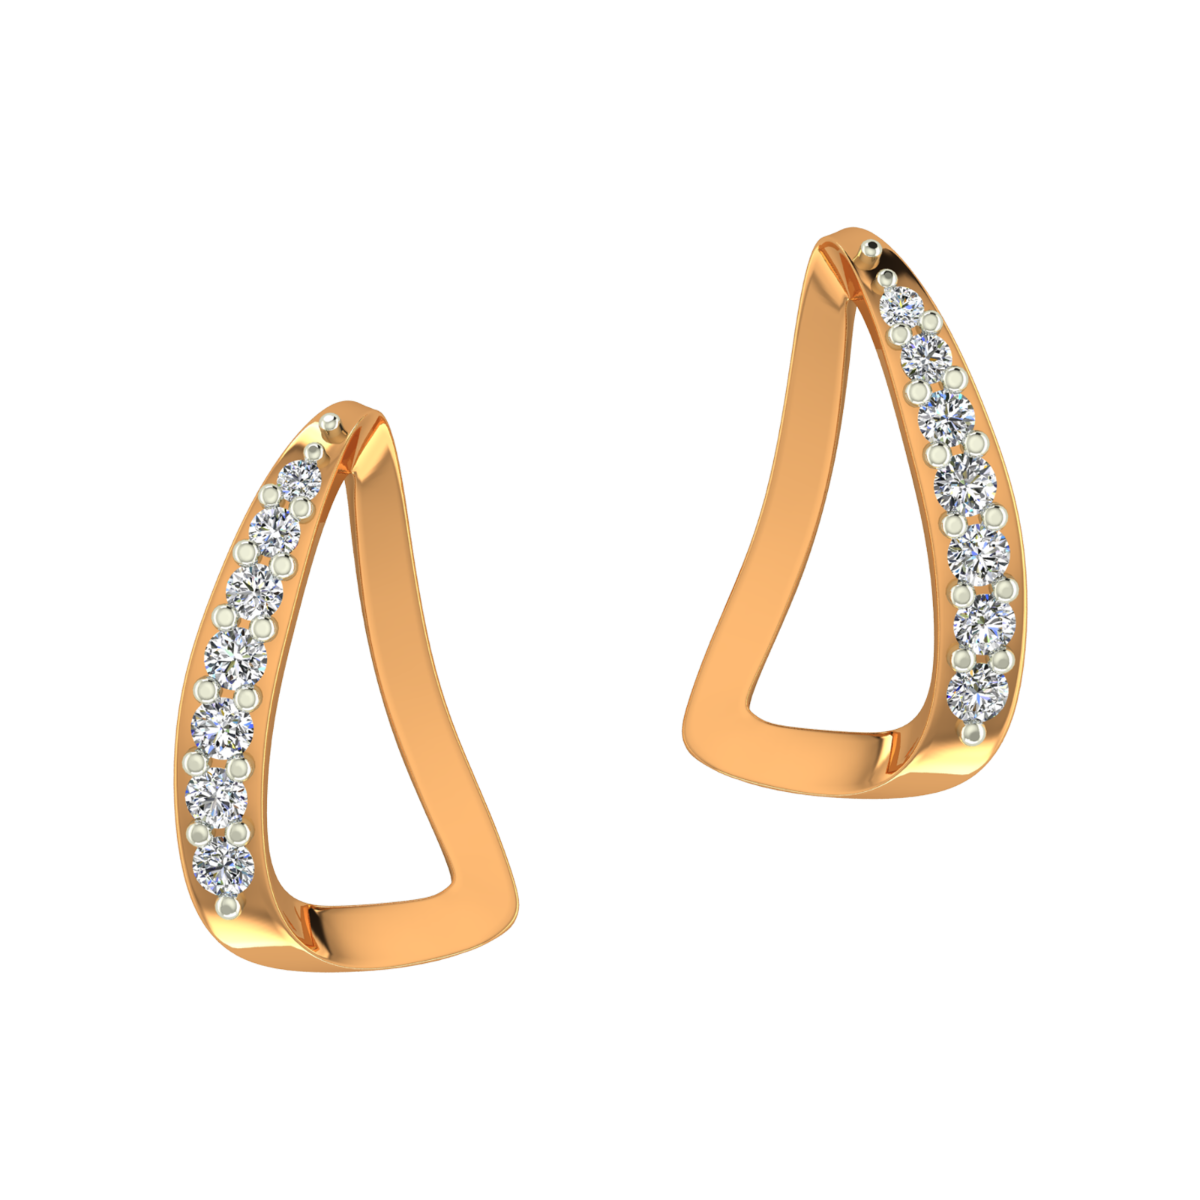 The Boats Gold Diamond Earrings